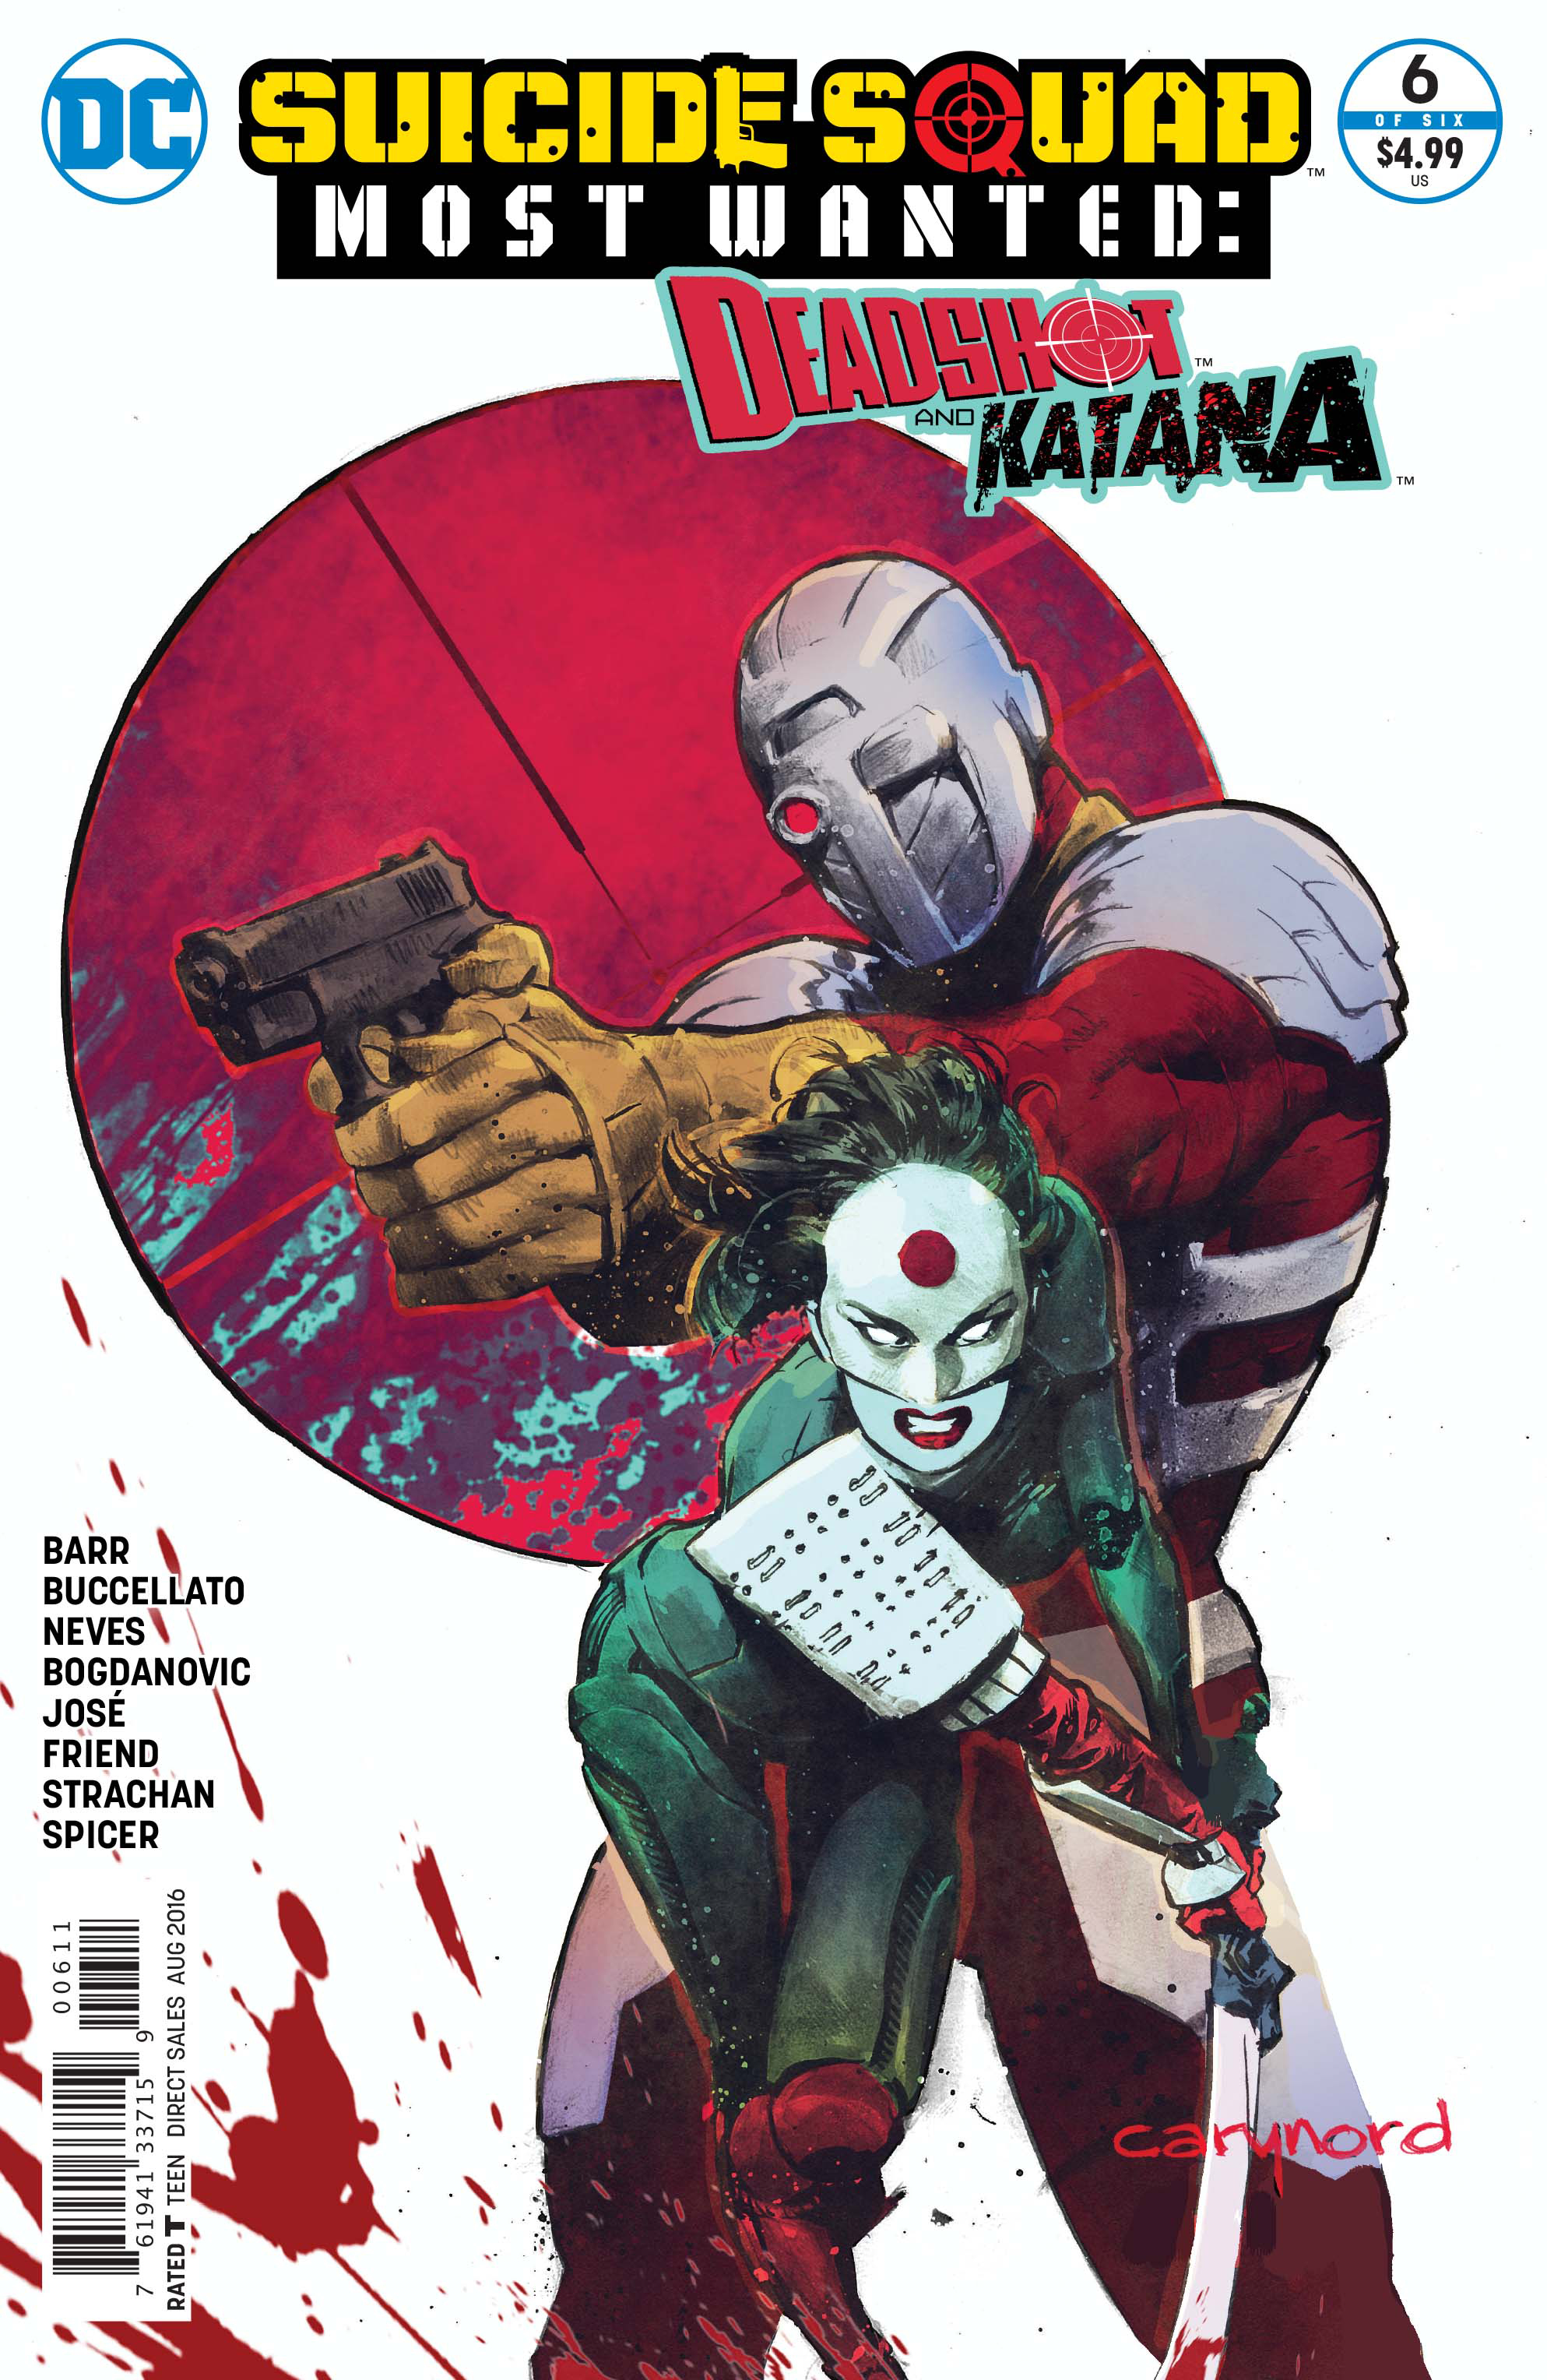 SUICIDE SQUAD MOST WANTED DEADSHOT KATANA #6 (OF 6)